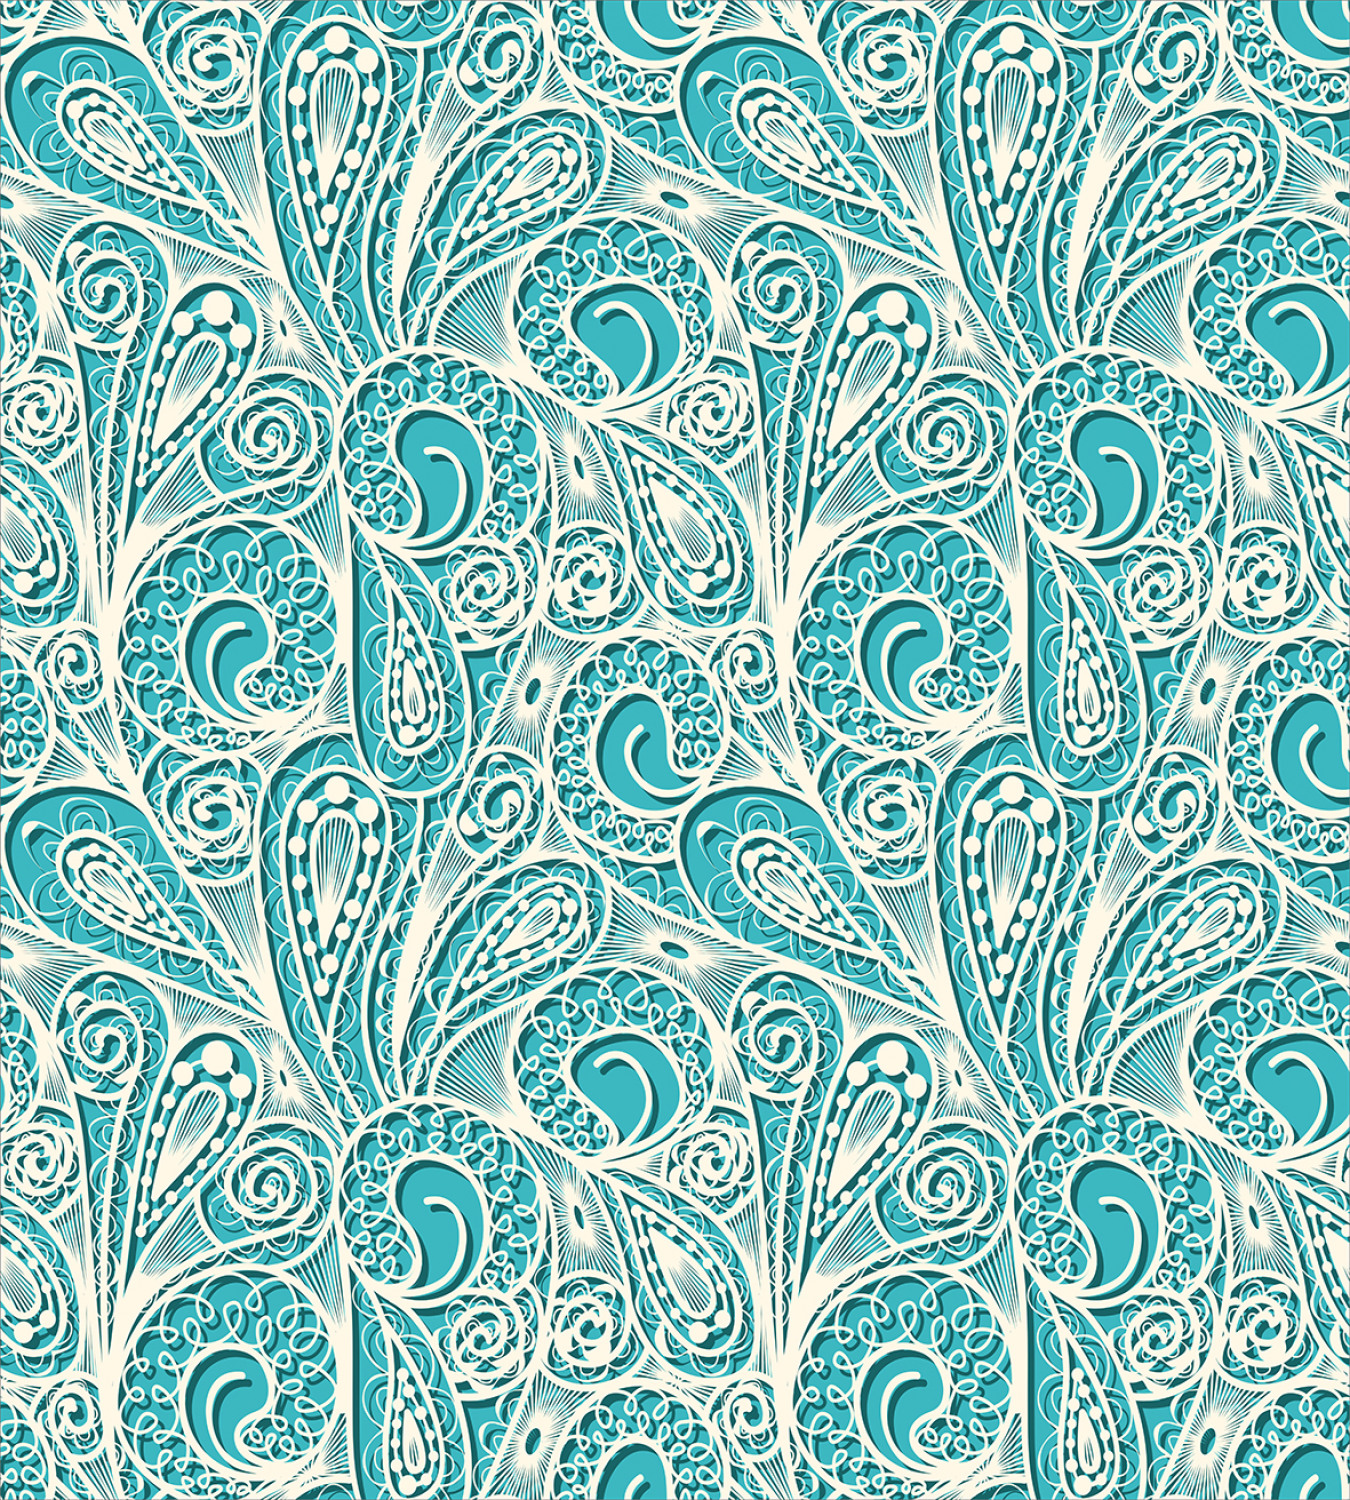 Teal-and-White-Duvet-Cover-Set-Twin-Queen-King-Sizes-with-Pillow-Shams-Ambesonne thumbnail 33